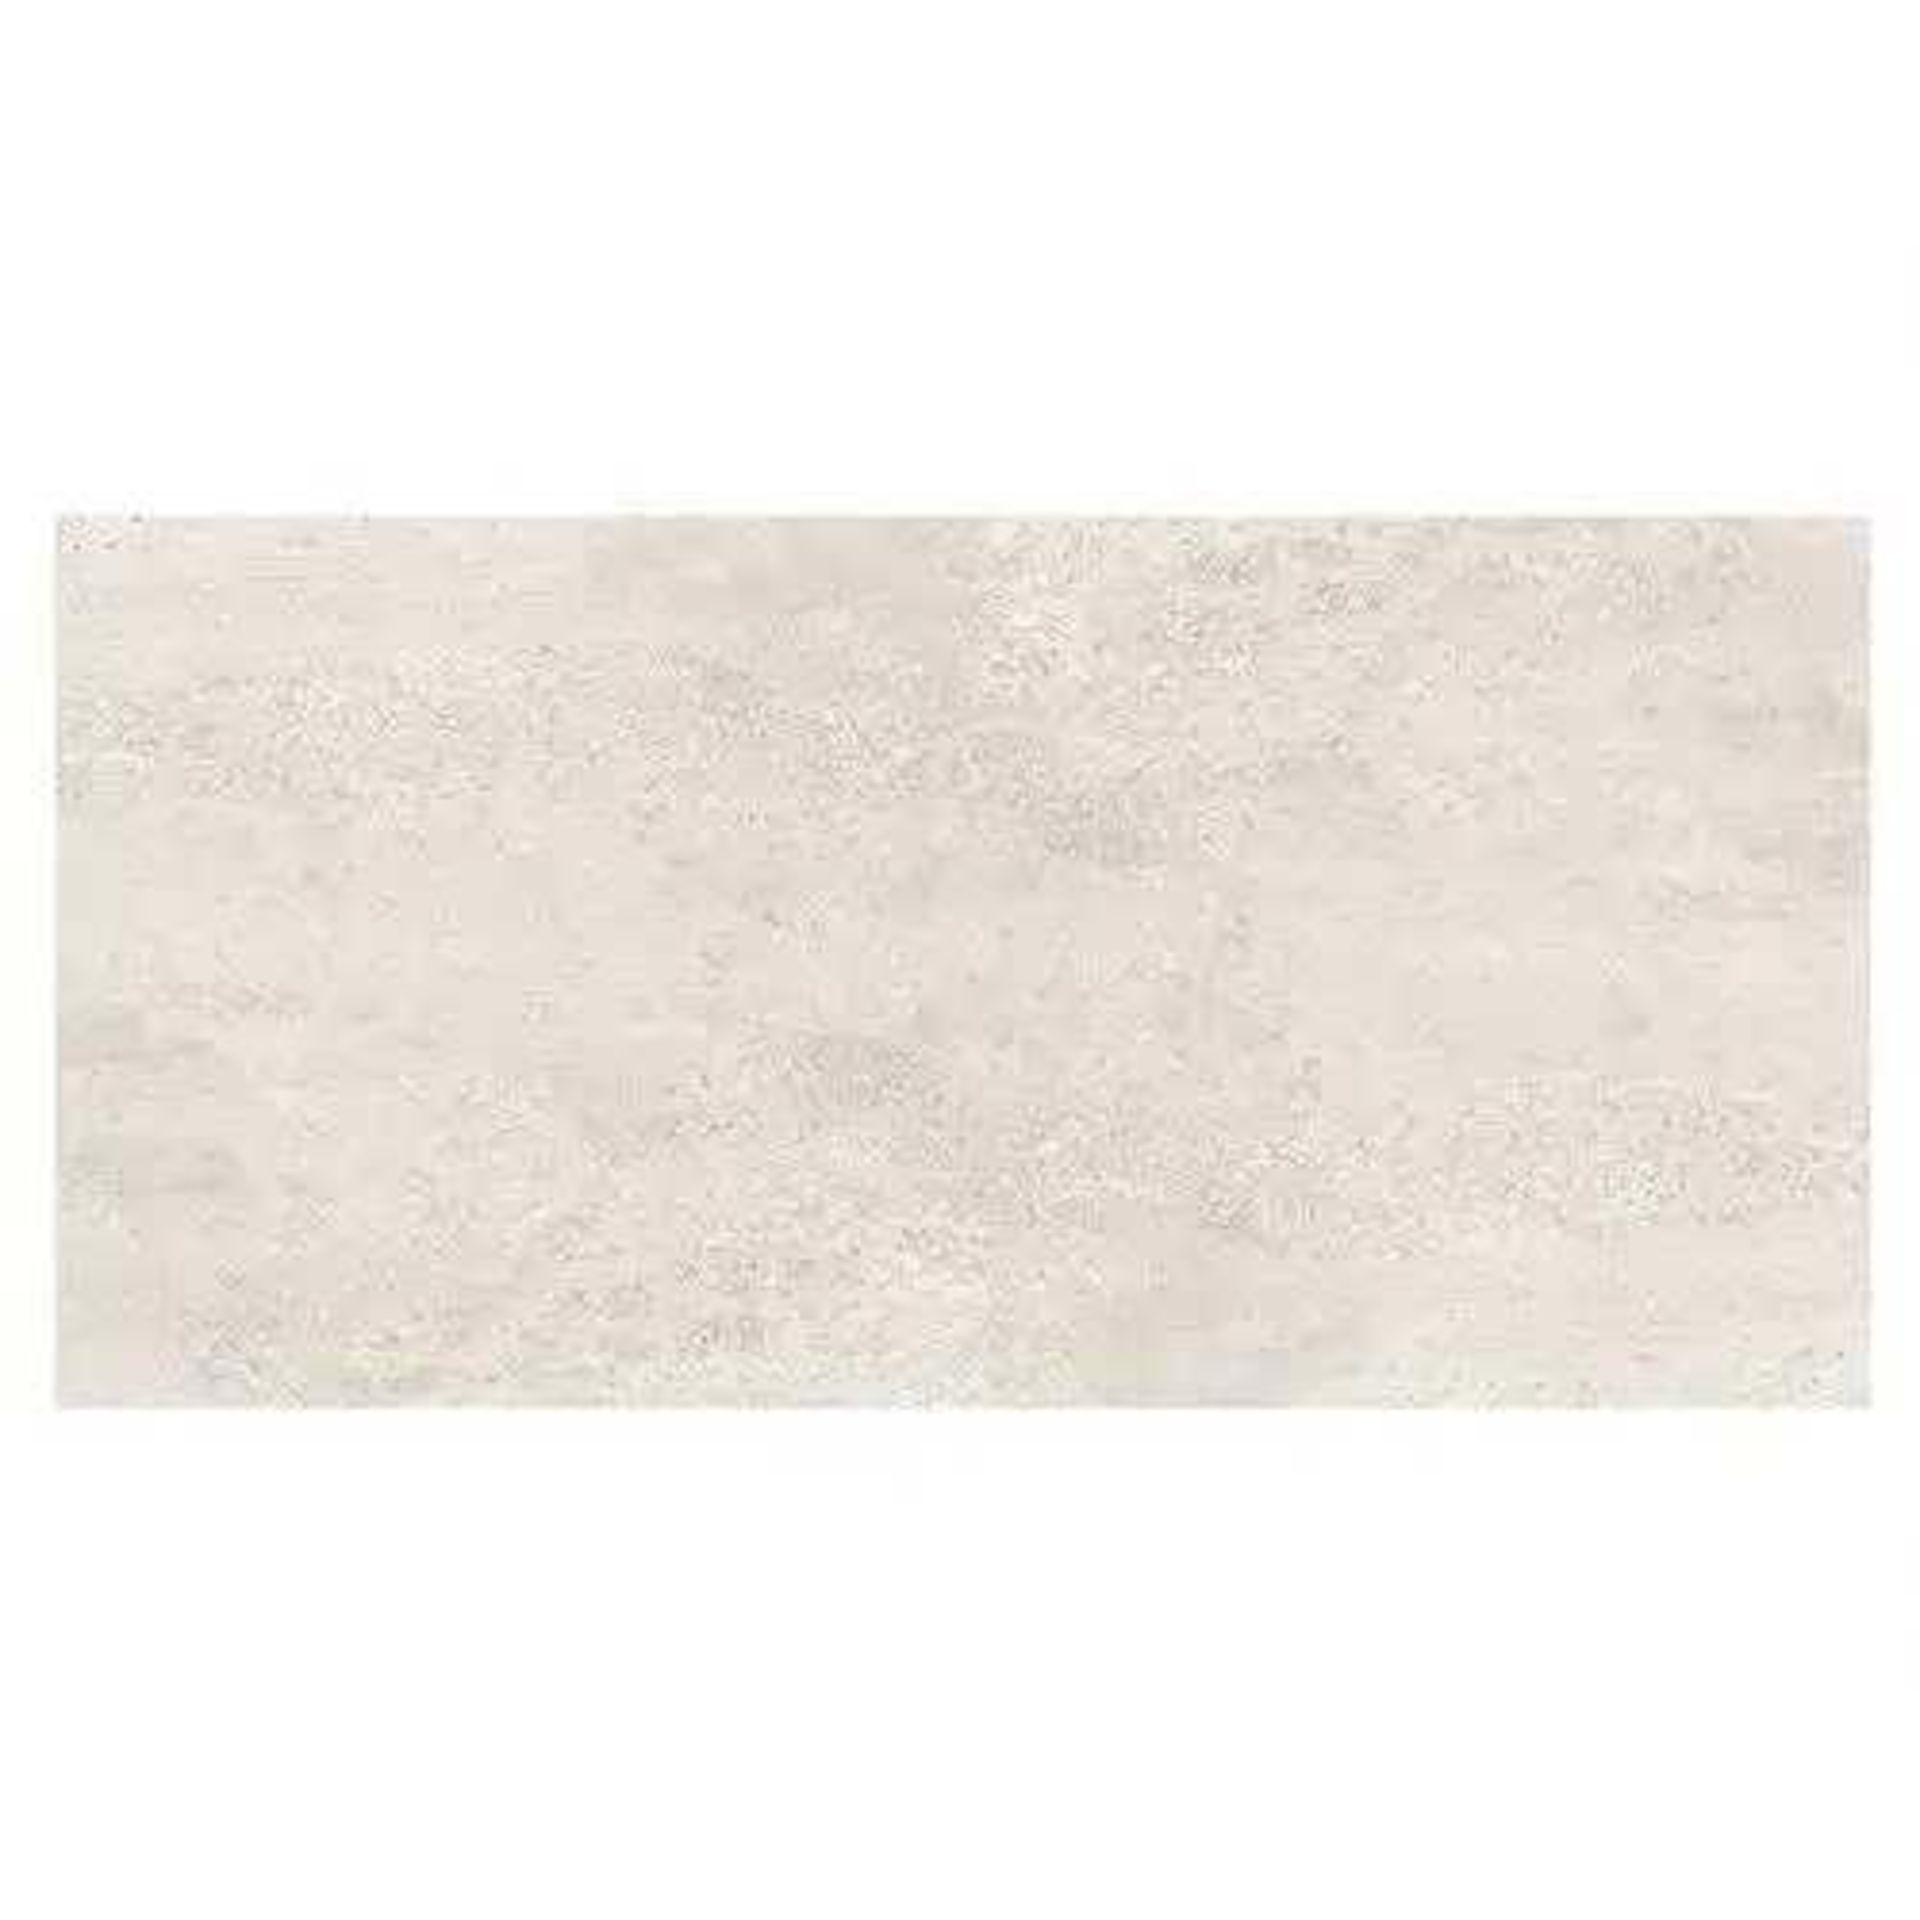 RRP £1400 Pallet To Contain 40 Brand New Packs Of 5 Johnson's Arl02A Weathered White Textured - Image 2 of 2